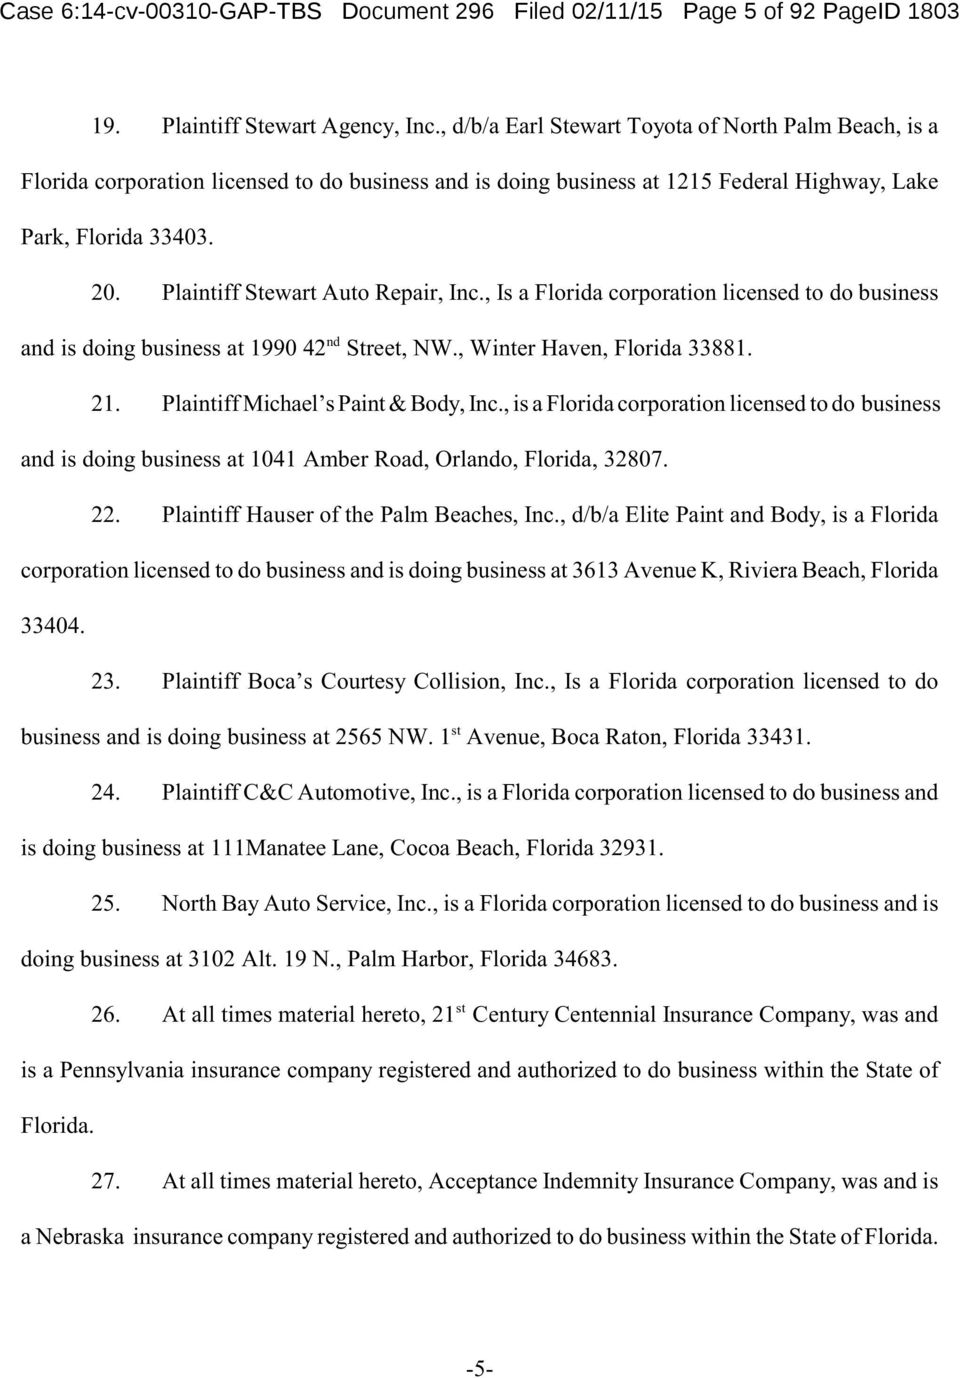 Plaintiff Stewart Auto Repair, Inc., Is a Florida corporation licensed to do business nd and is doing business at 1990 42 Street, NW., Winter Haven, Florida 33881. 21.